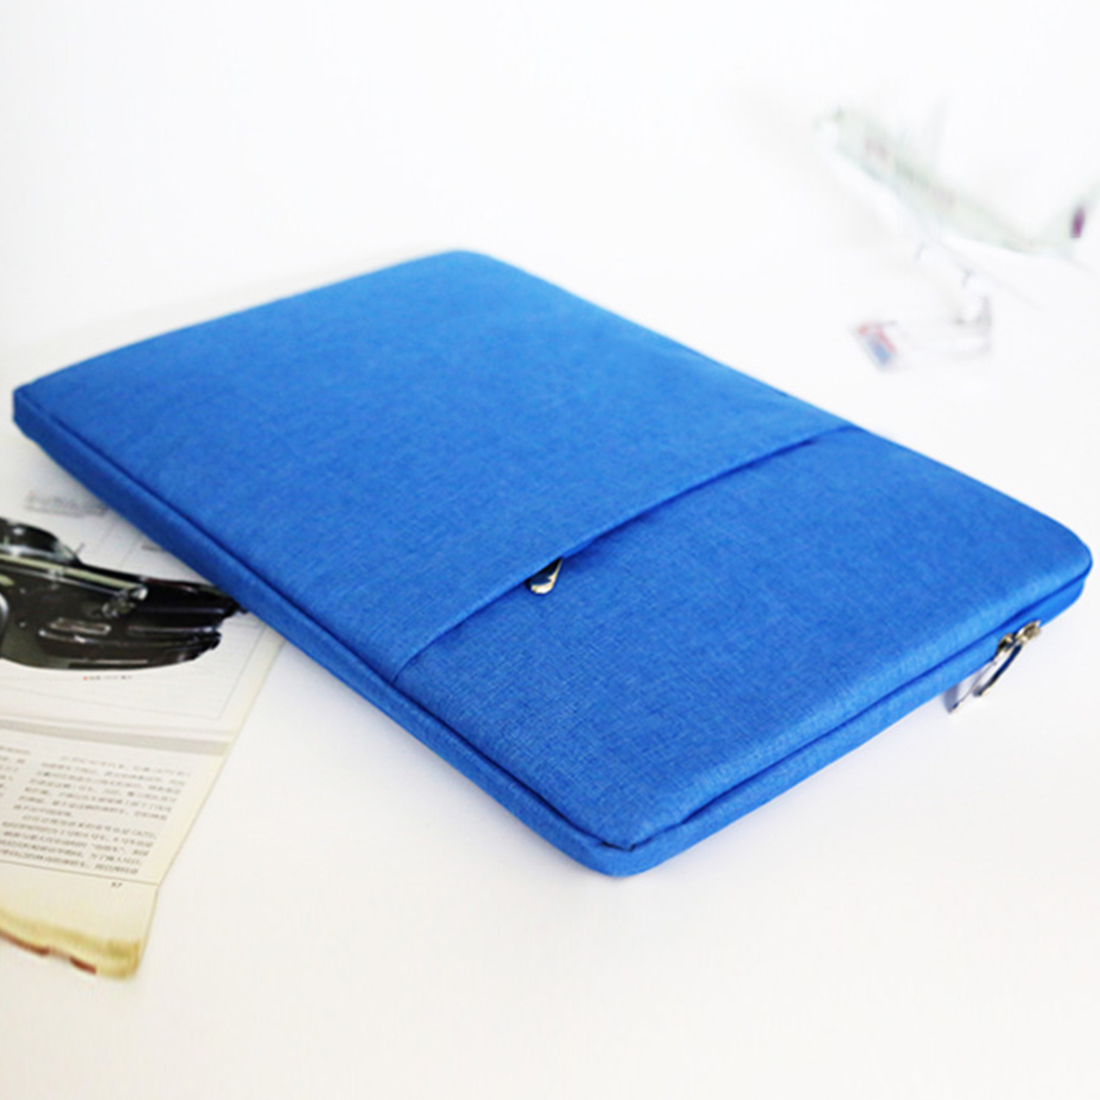 Image 5 - Nylon Laptop Sleeve Notebook Bag Pouch Case for MacBook air pro 11.6 13.3 15 Unisex Liner Sleeve Simple-in Laptop Bags & Cases from Computer & Office